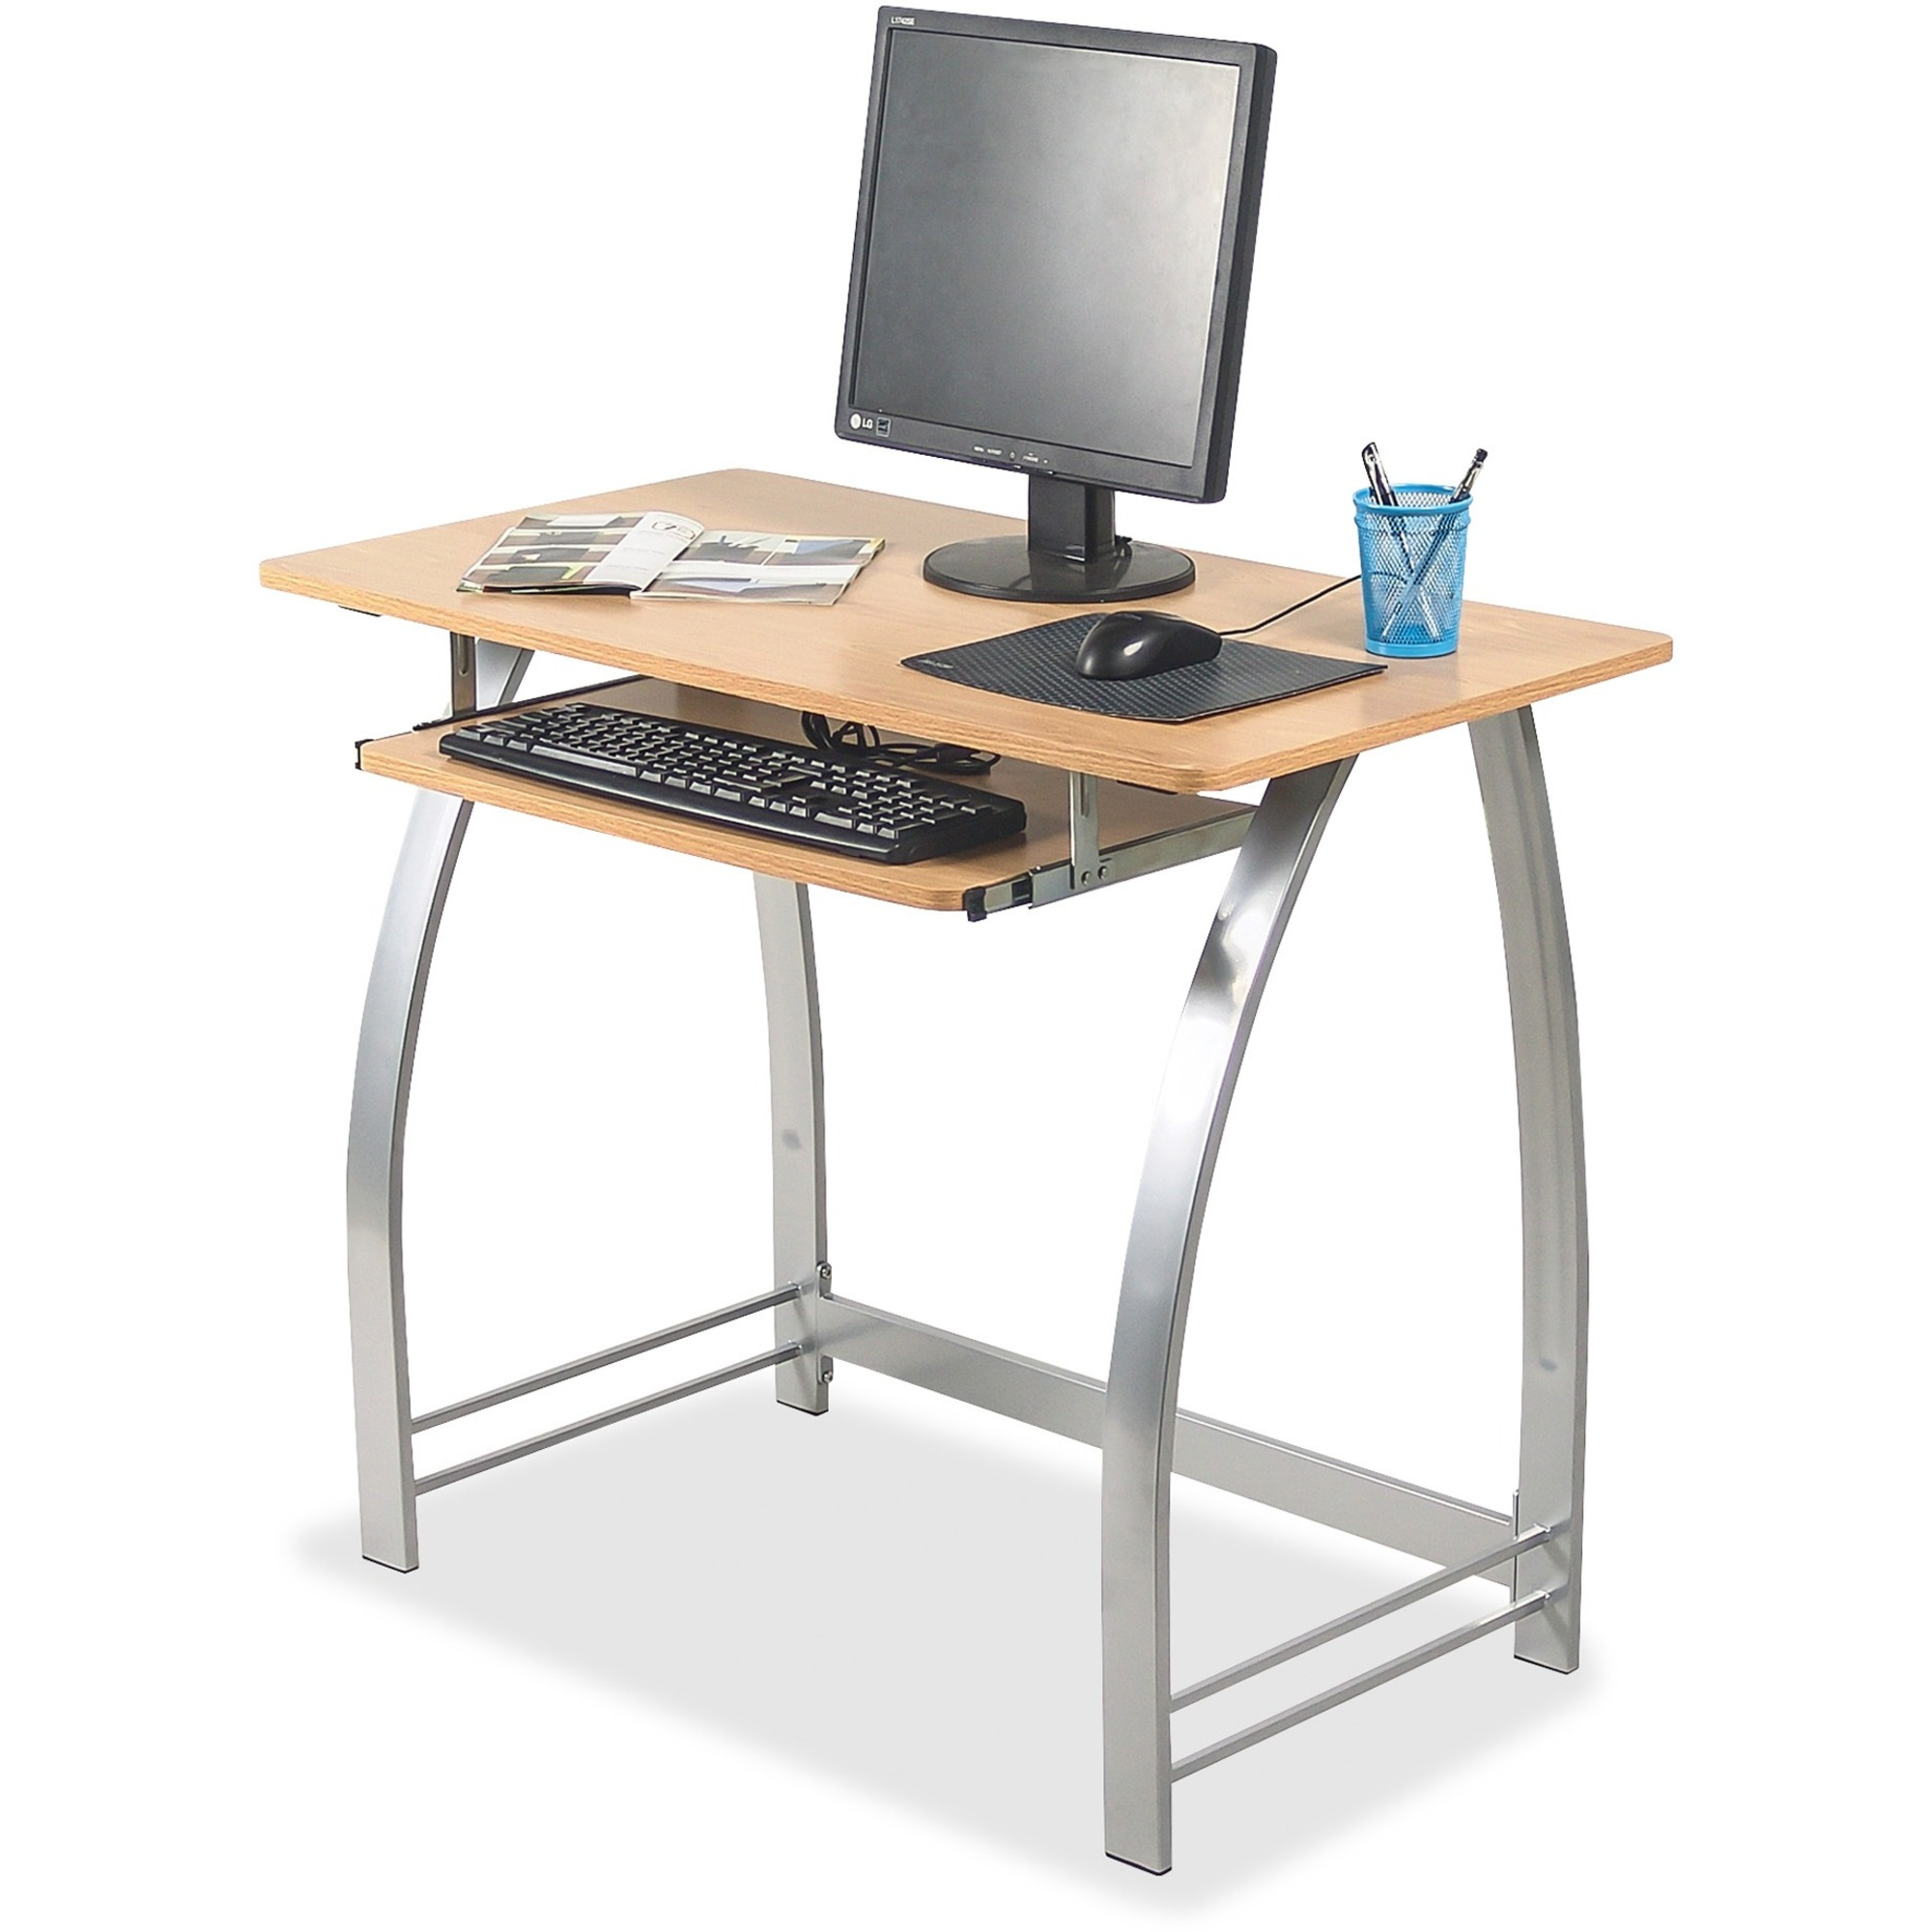 Lorell Maple Laminate Computer Desk Rectangle Top 36 2 Table Width X 19 Depth 30 Height